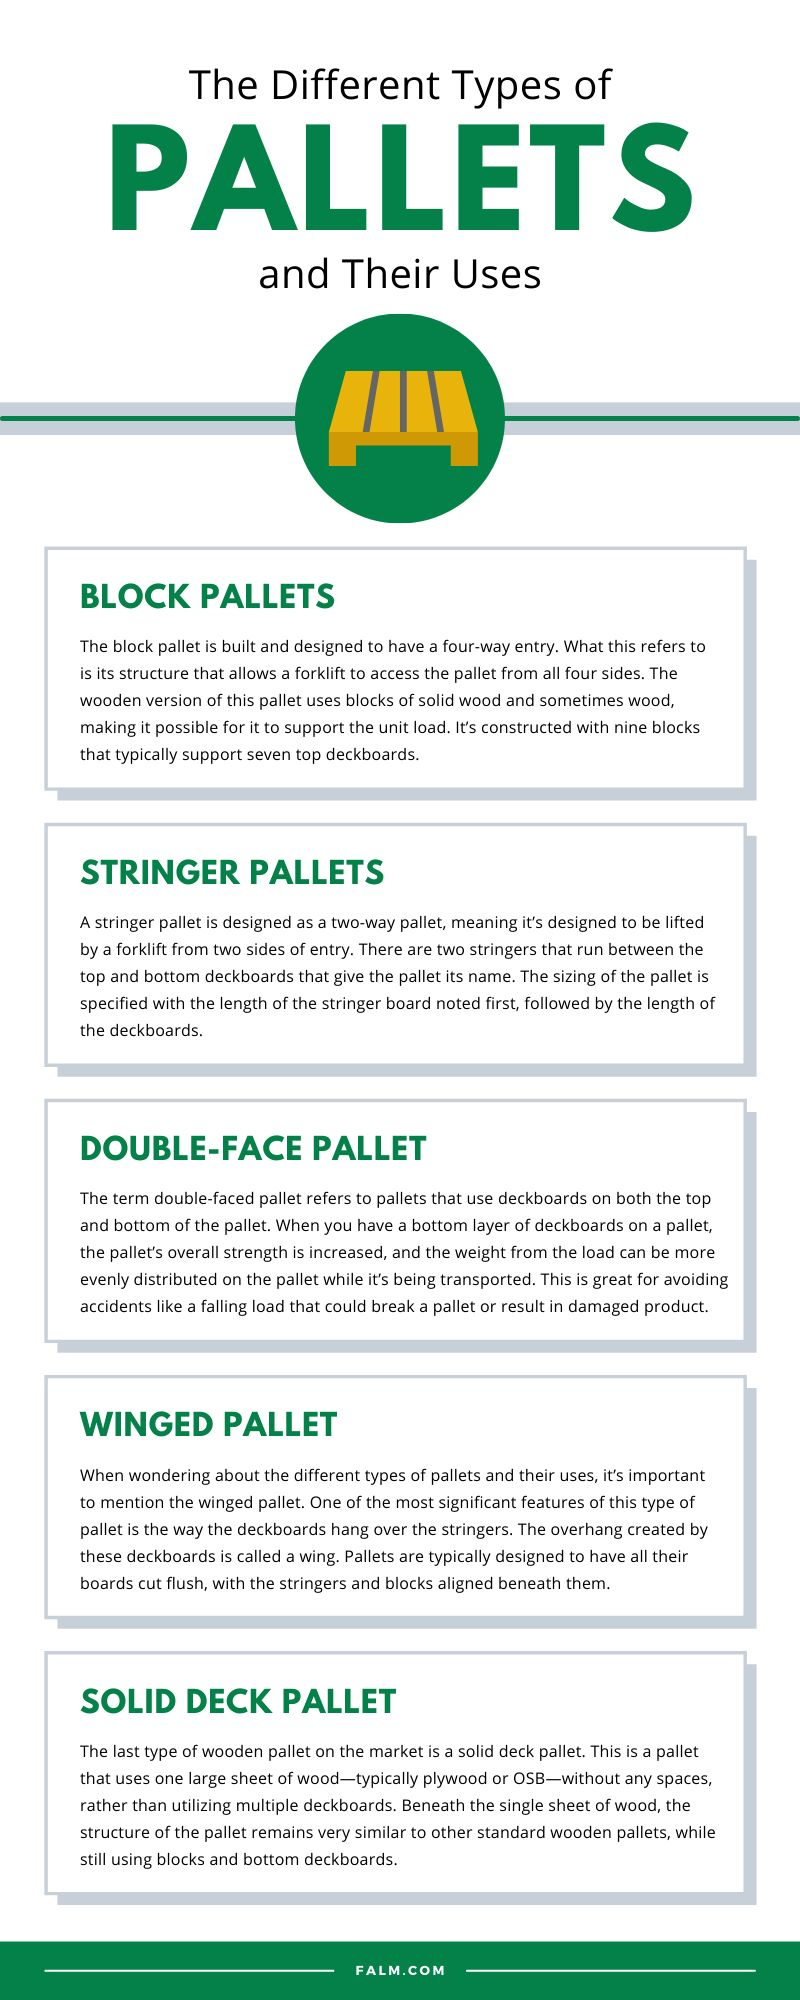 The Different Types of Pallets and Their Uses